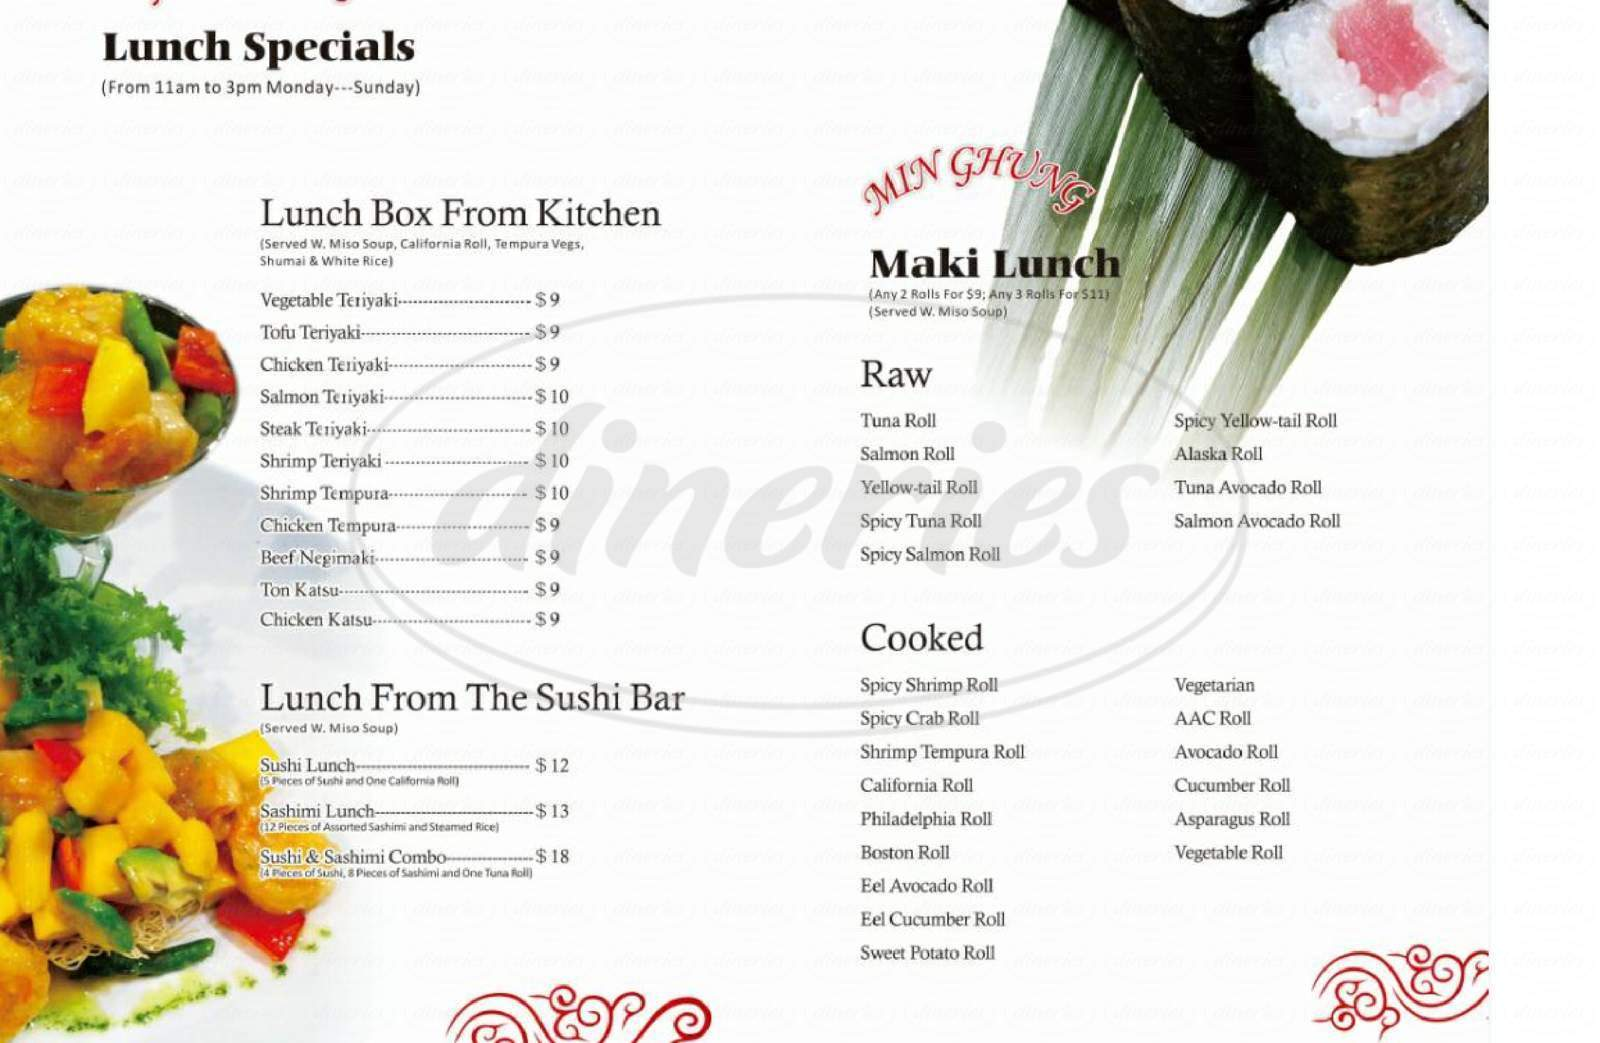 menu for Min Ghung